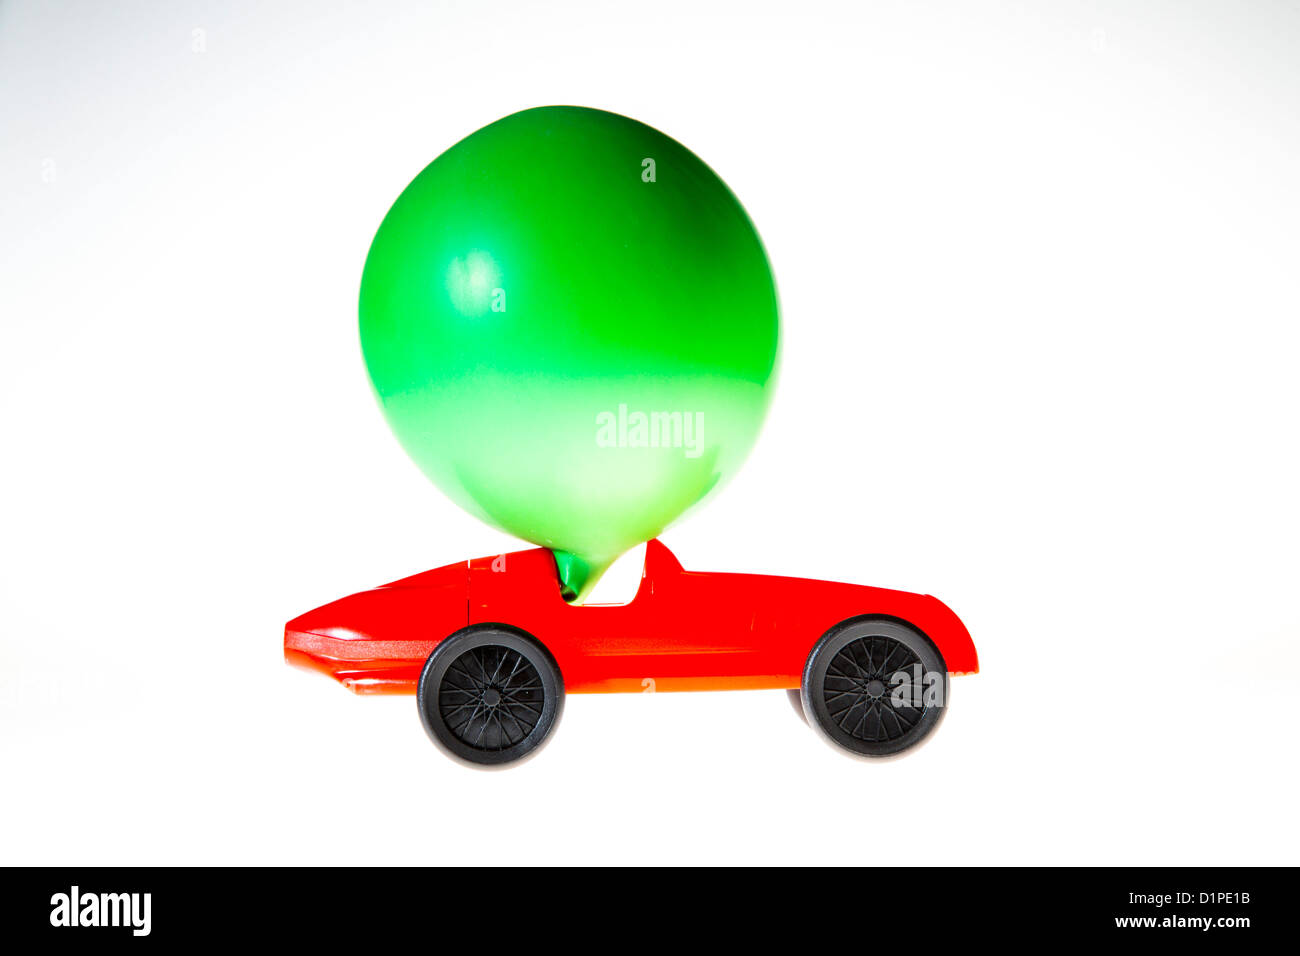 Toy car, powered by the air of a blown up balloon. The effluent air drives the car forward. Symbol image, alternative - Stock Image